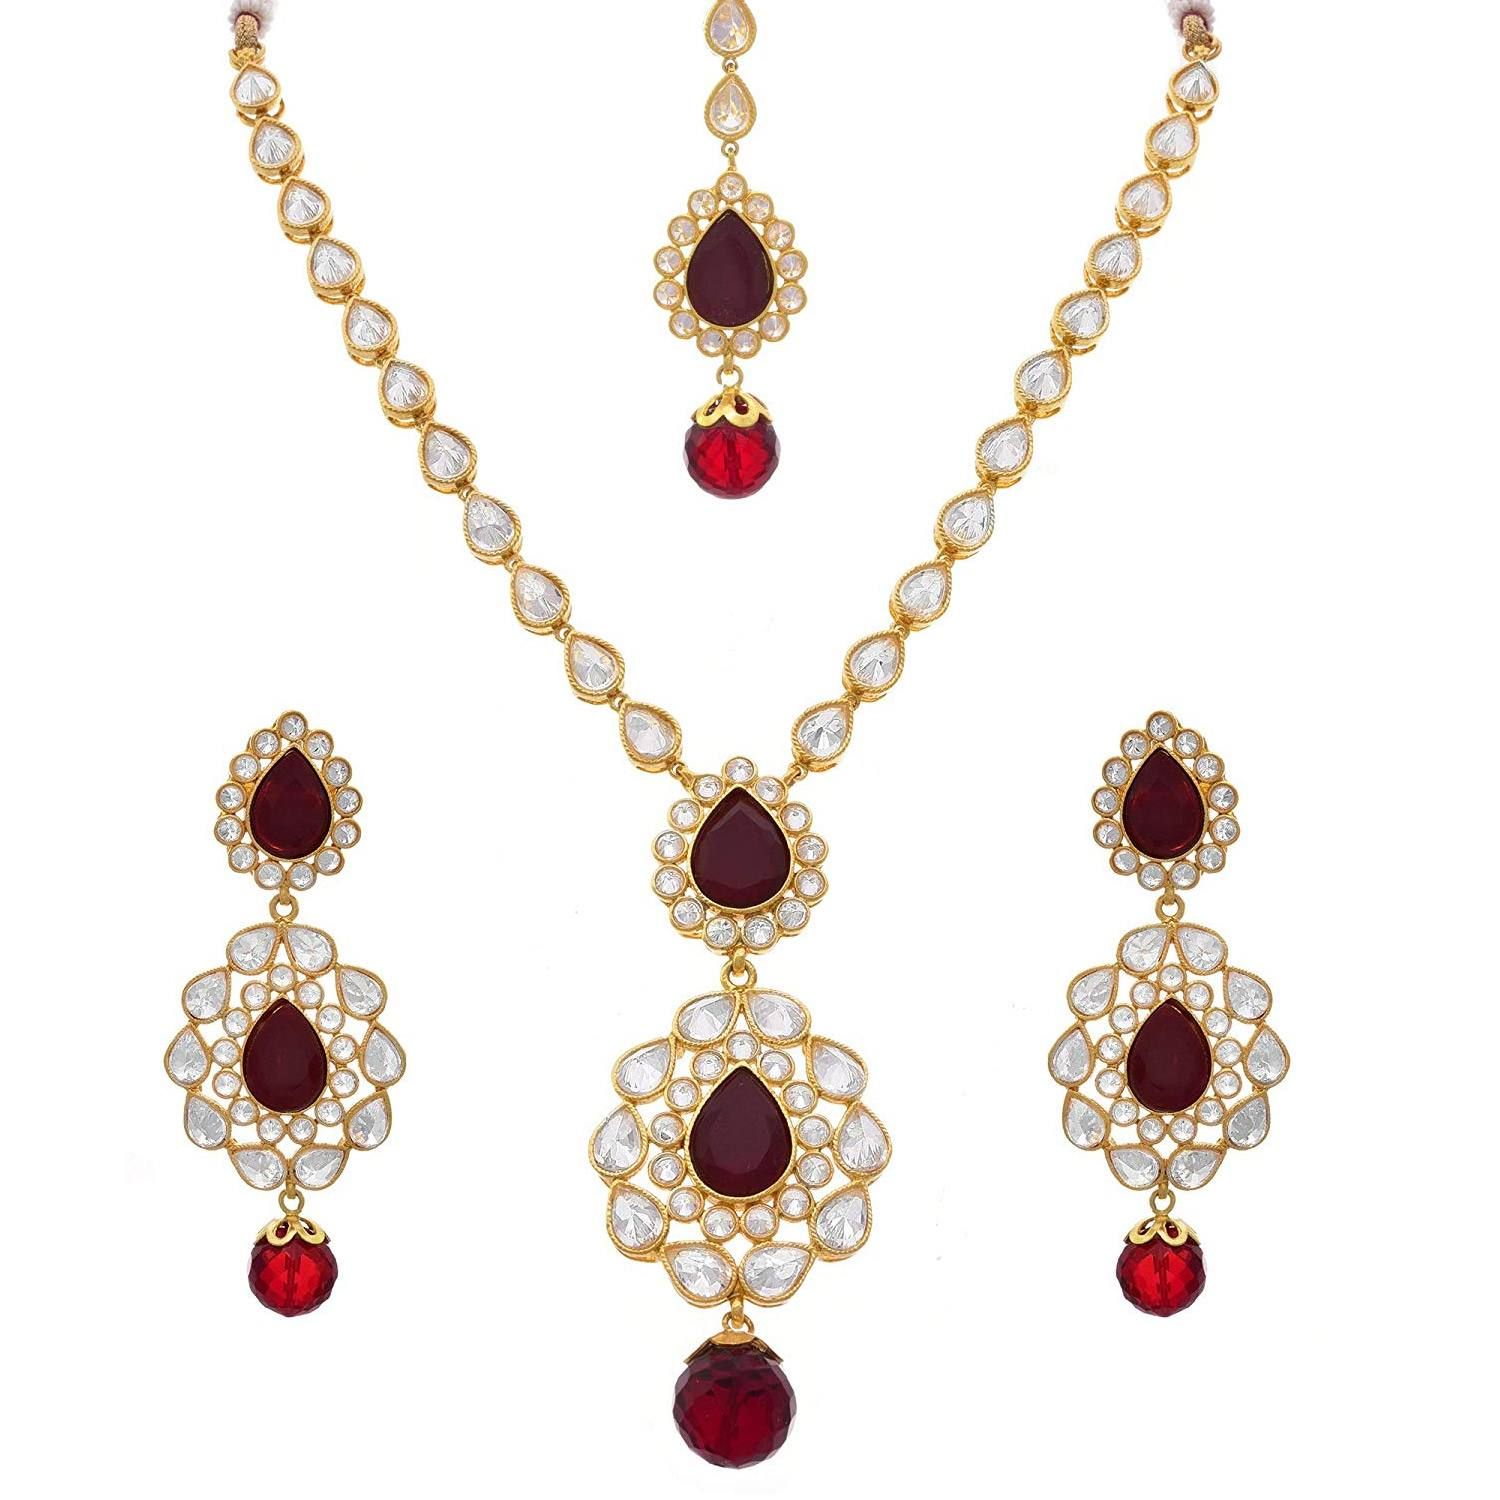 JFL - Traditional Ethnic One Gram Gold Plated Cz Polki Diamond Red Designer Necklace Set with Earring & Maang Tikka for Women & Girls